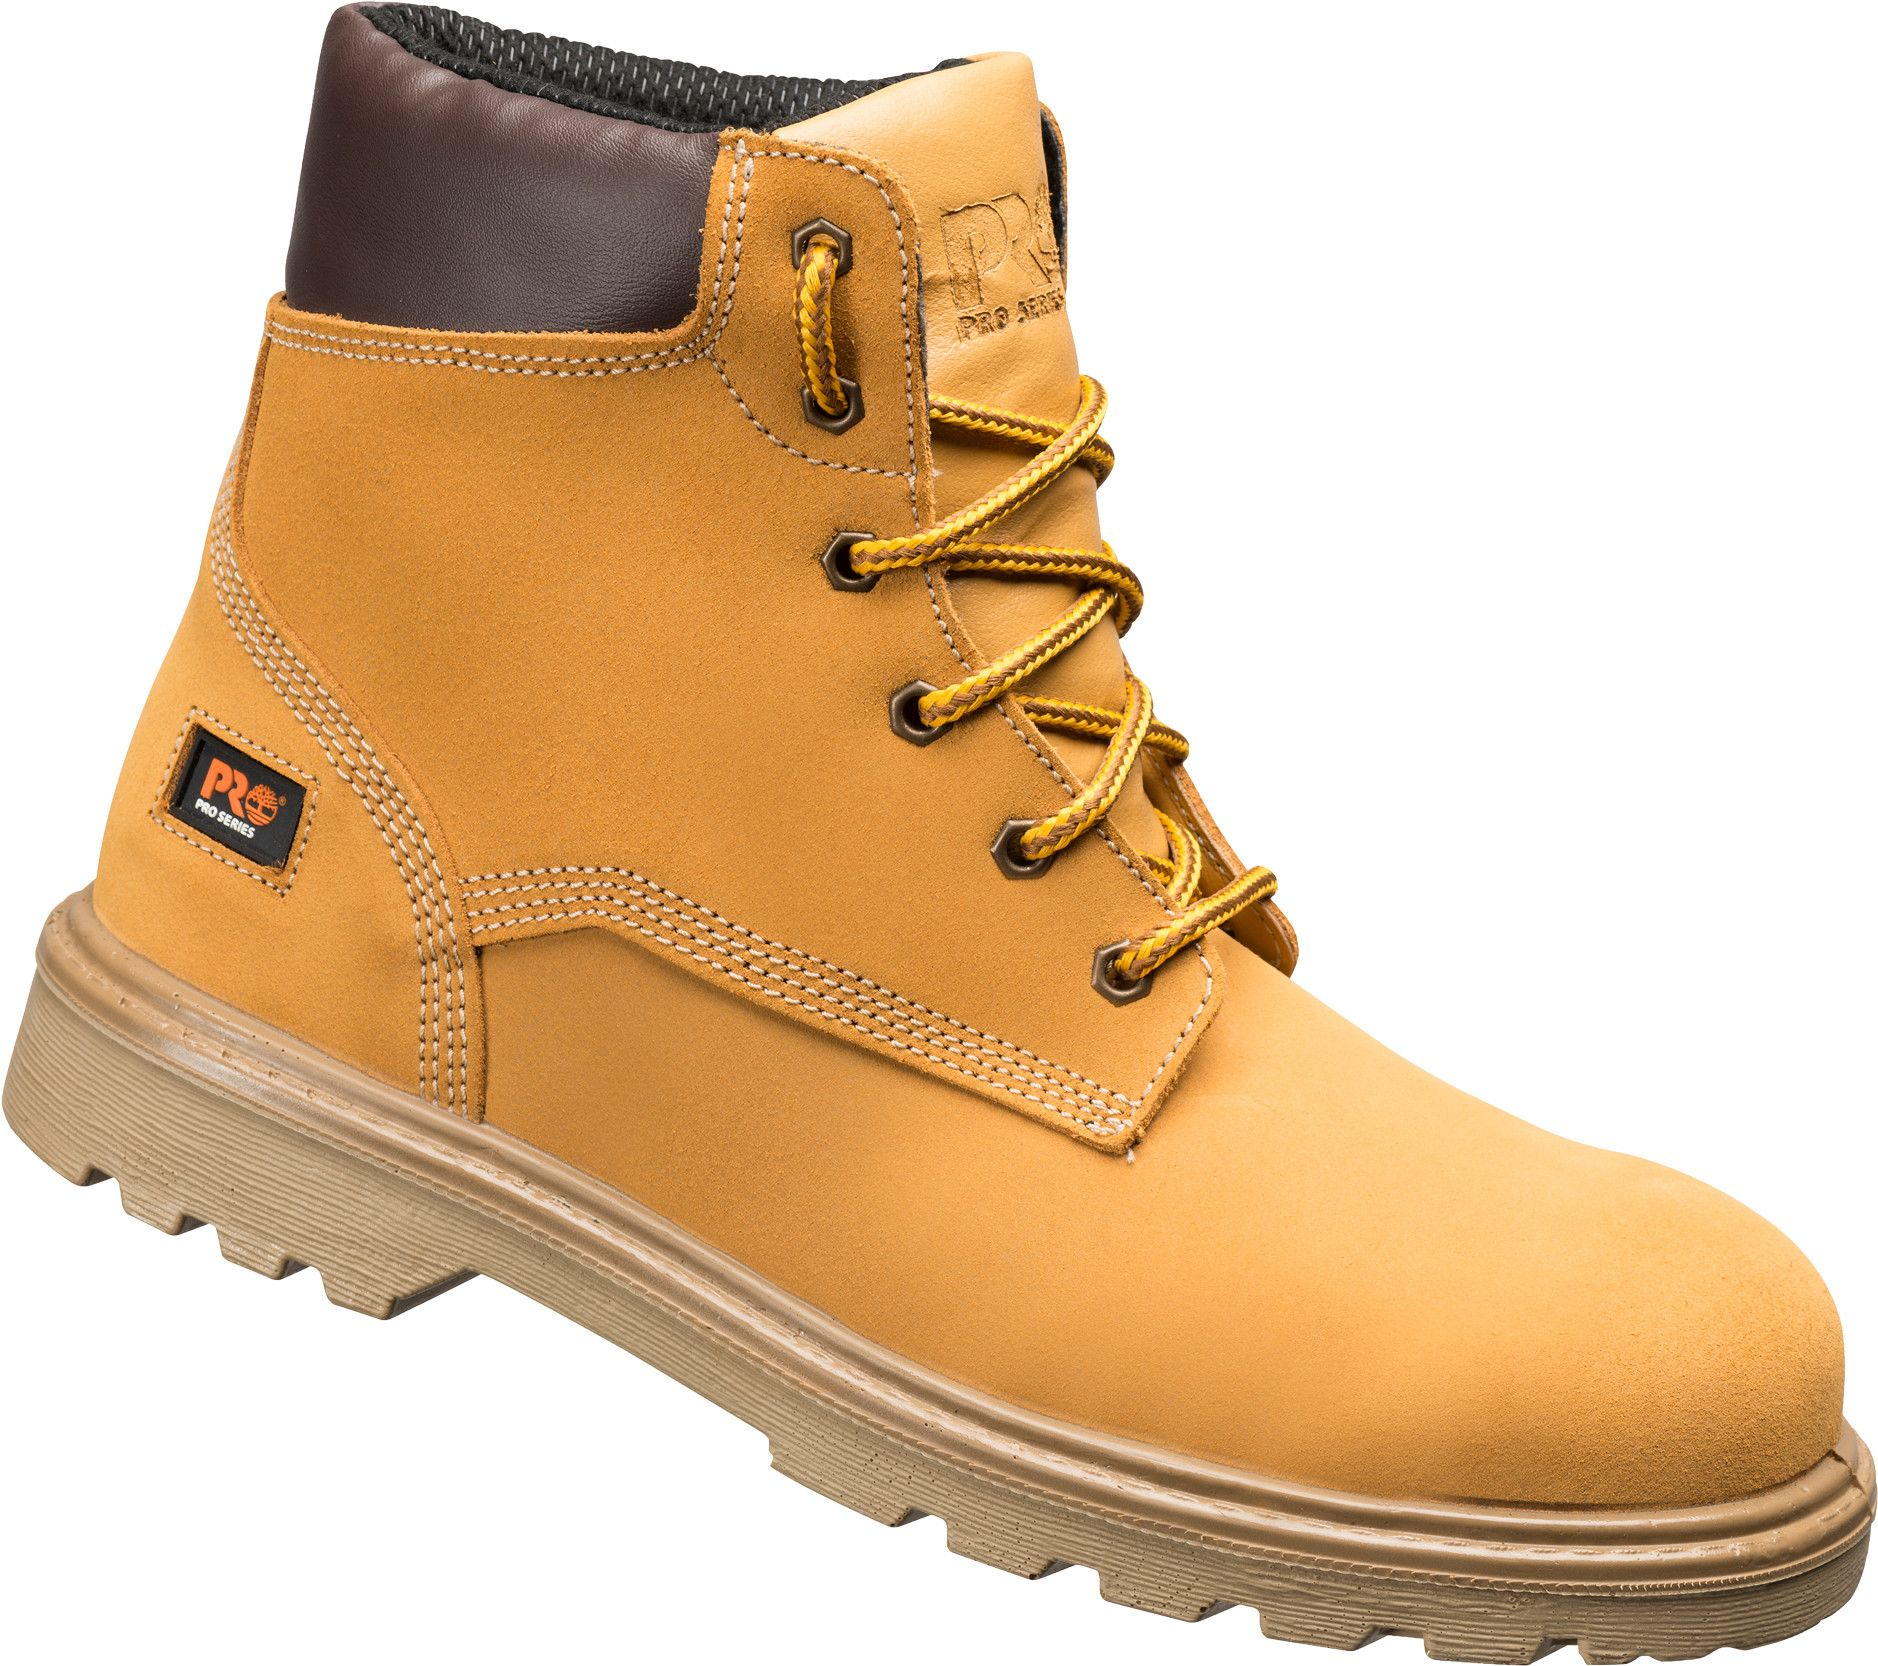 Timberland Mens PRO Hero Lace Up Nubuck Leather Safety Ankle Boot -  Timberland schuhe (*Partner-Link)